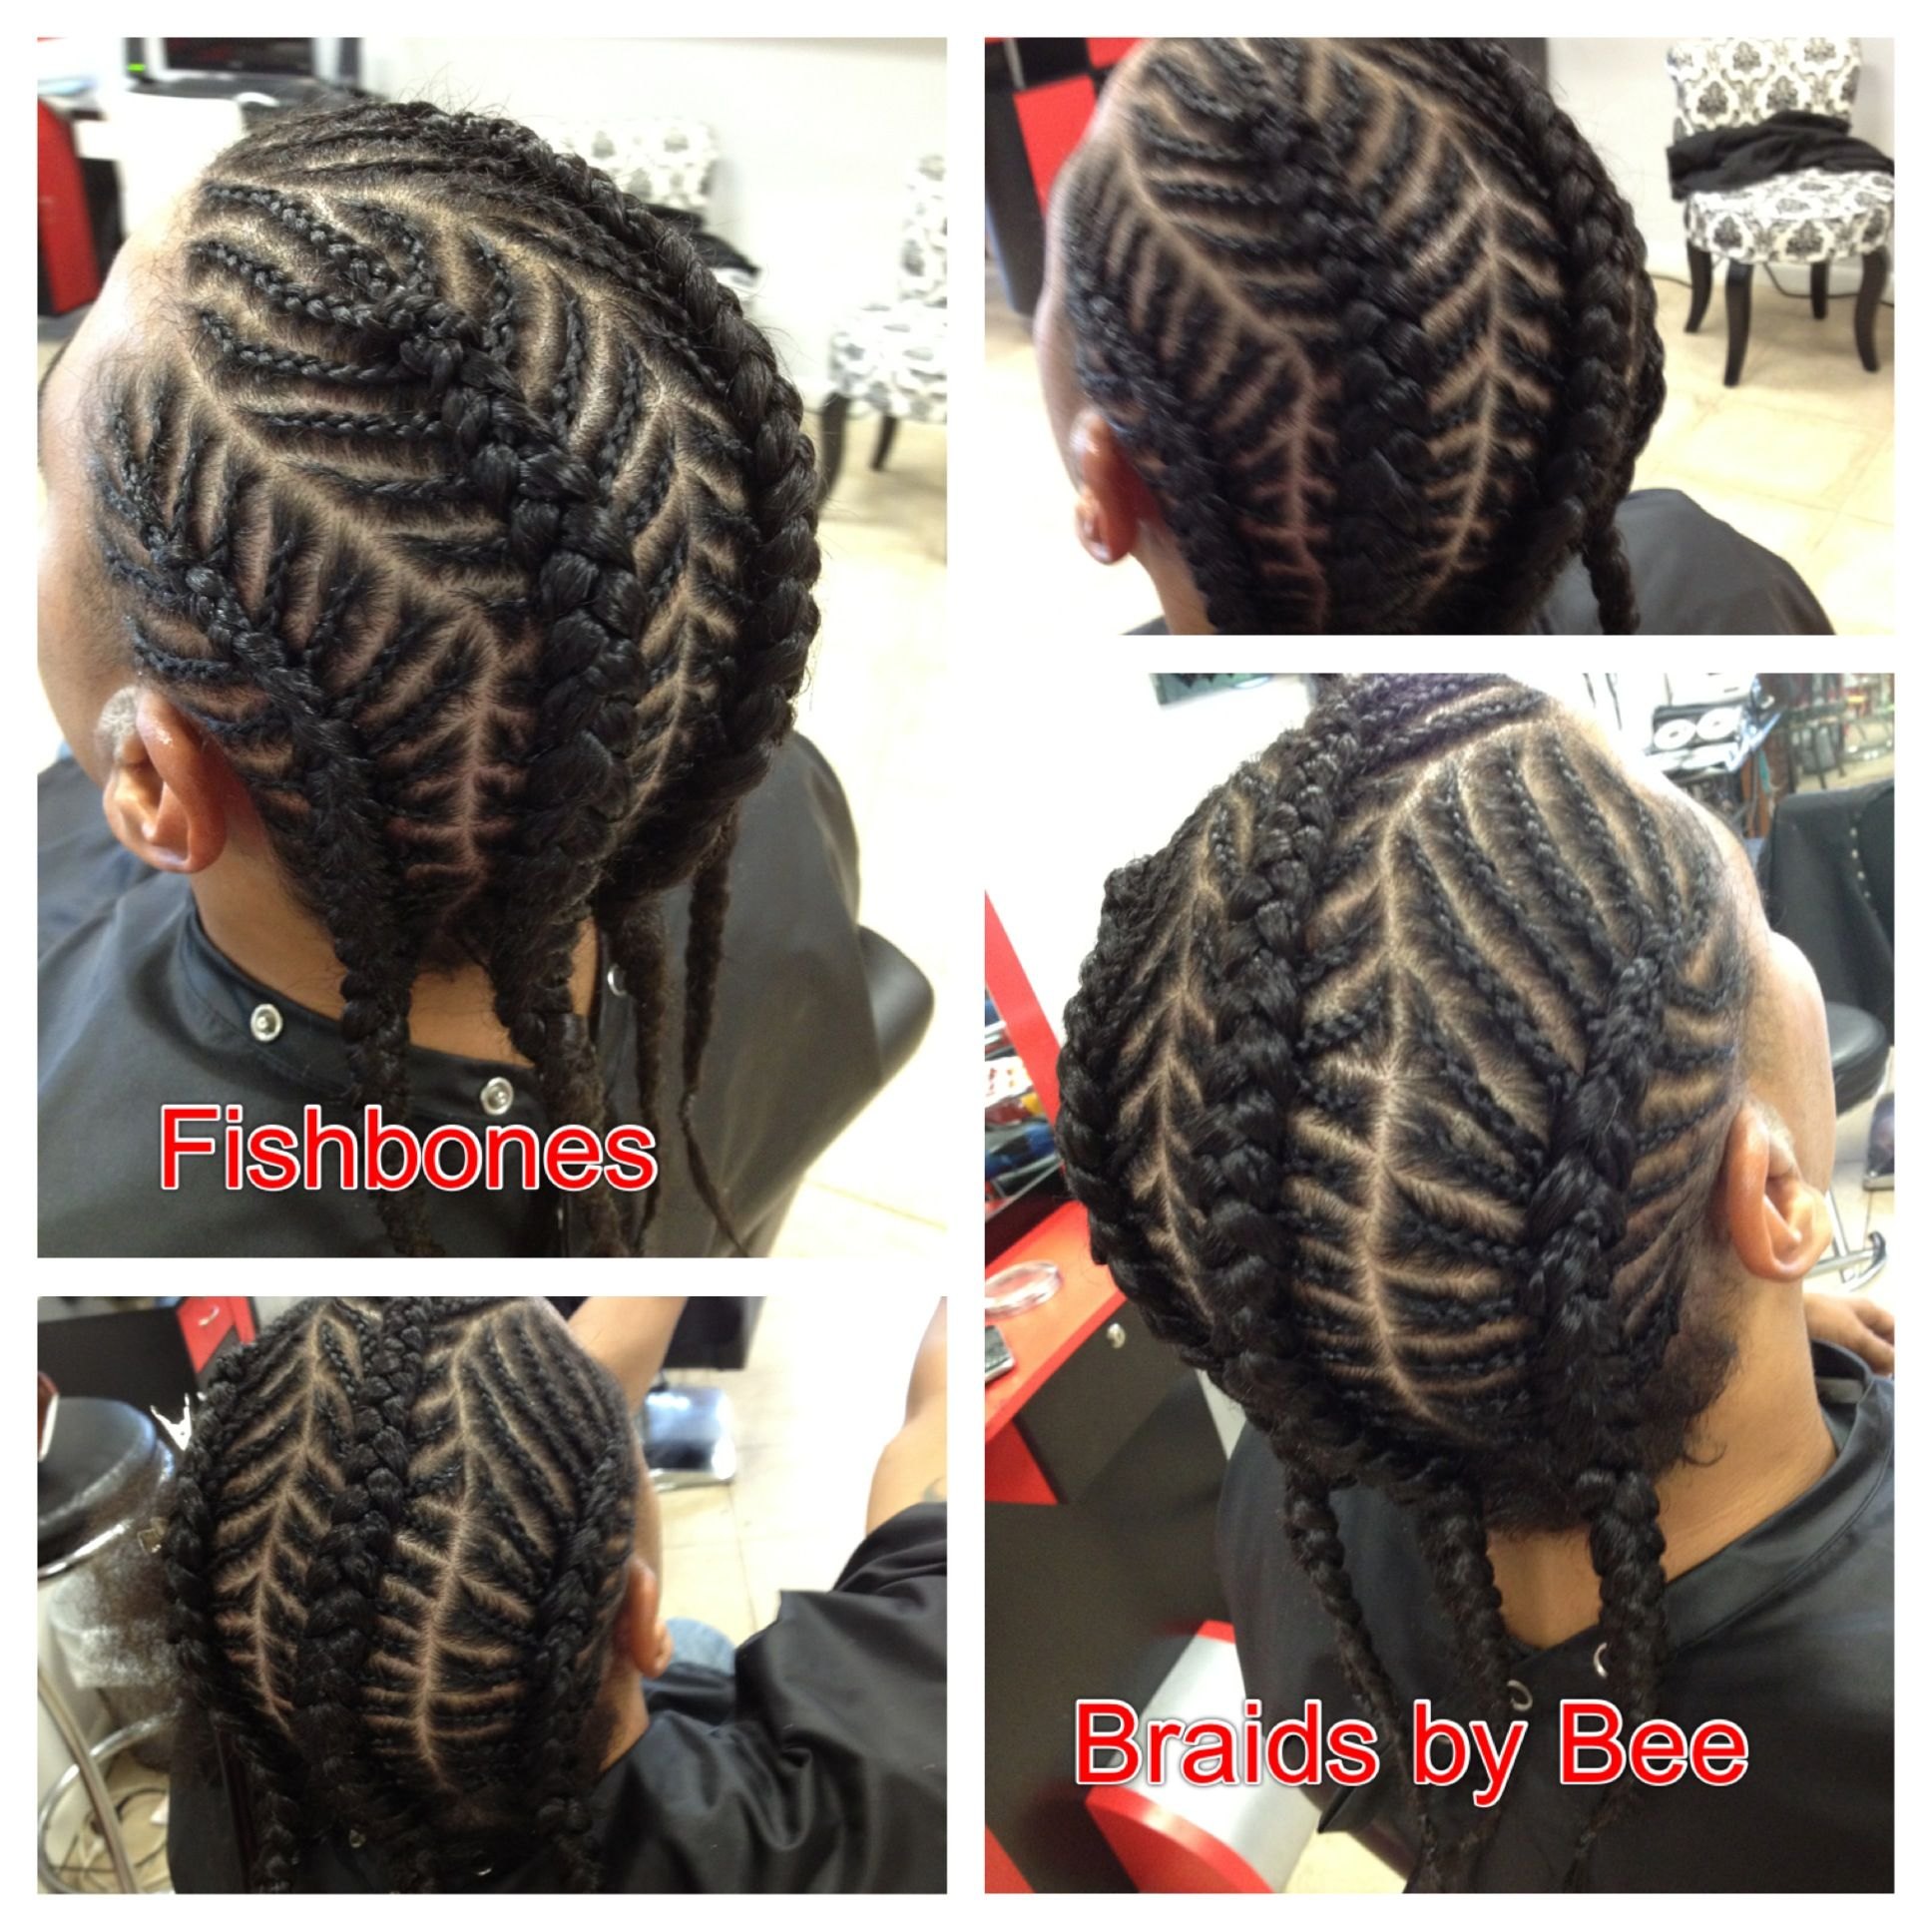 fishbone hair styles 4 fishbone corn row braids with hair washed 6601